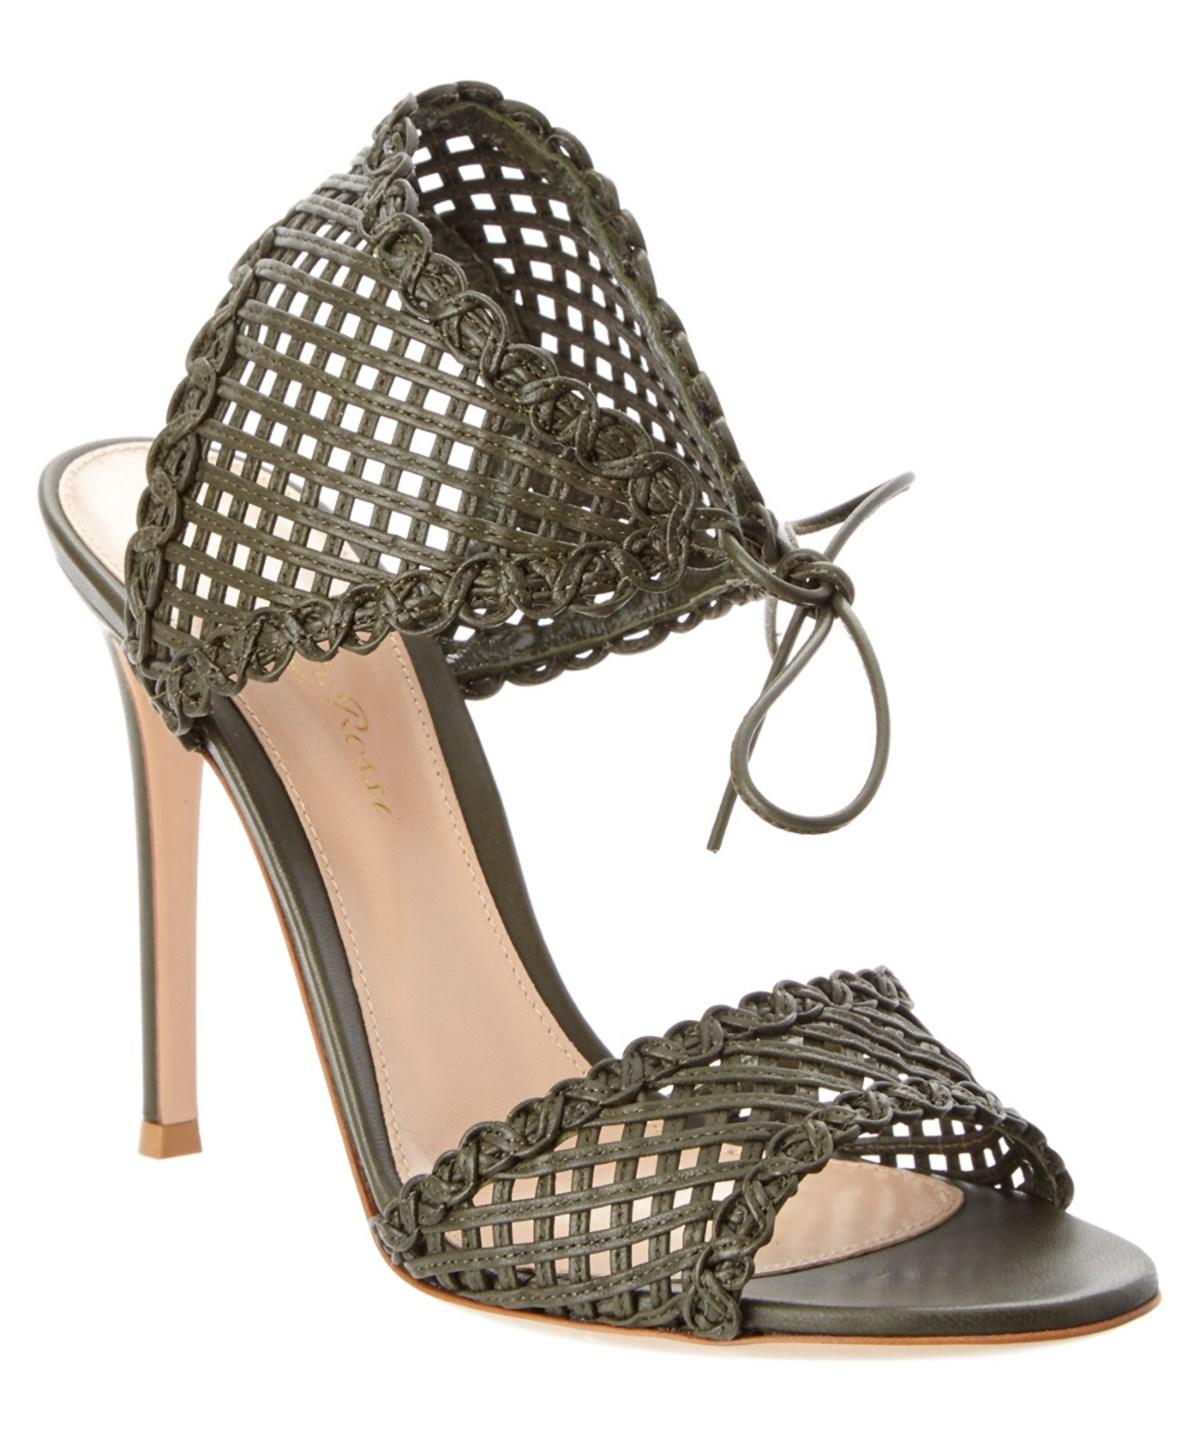 ecce16ed0 Gianvito Rossi Woven Leather Ankle Tie Sandal  In Olive